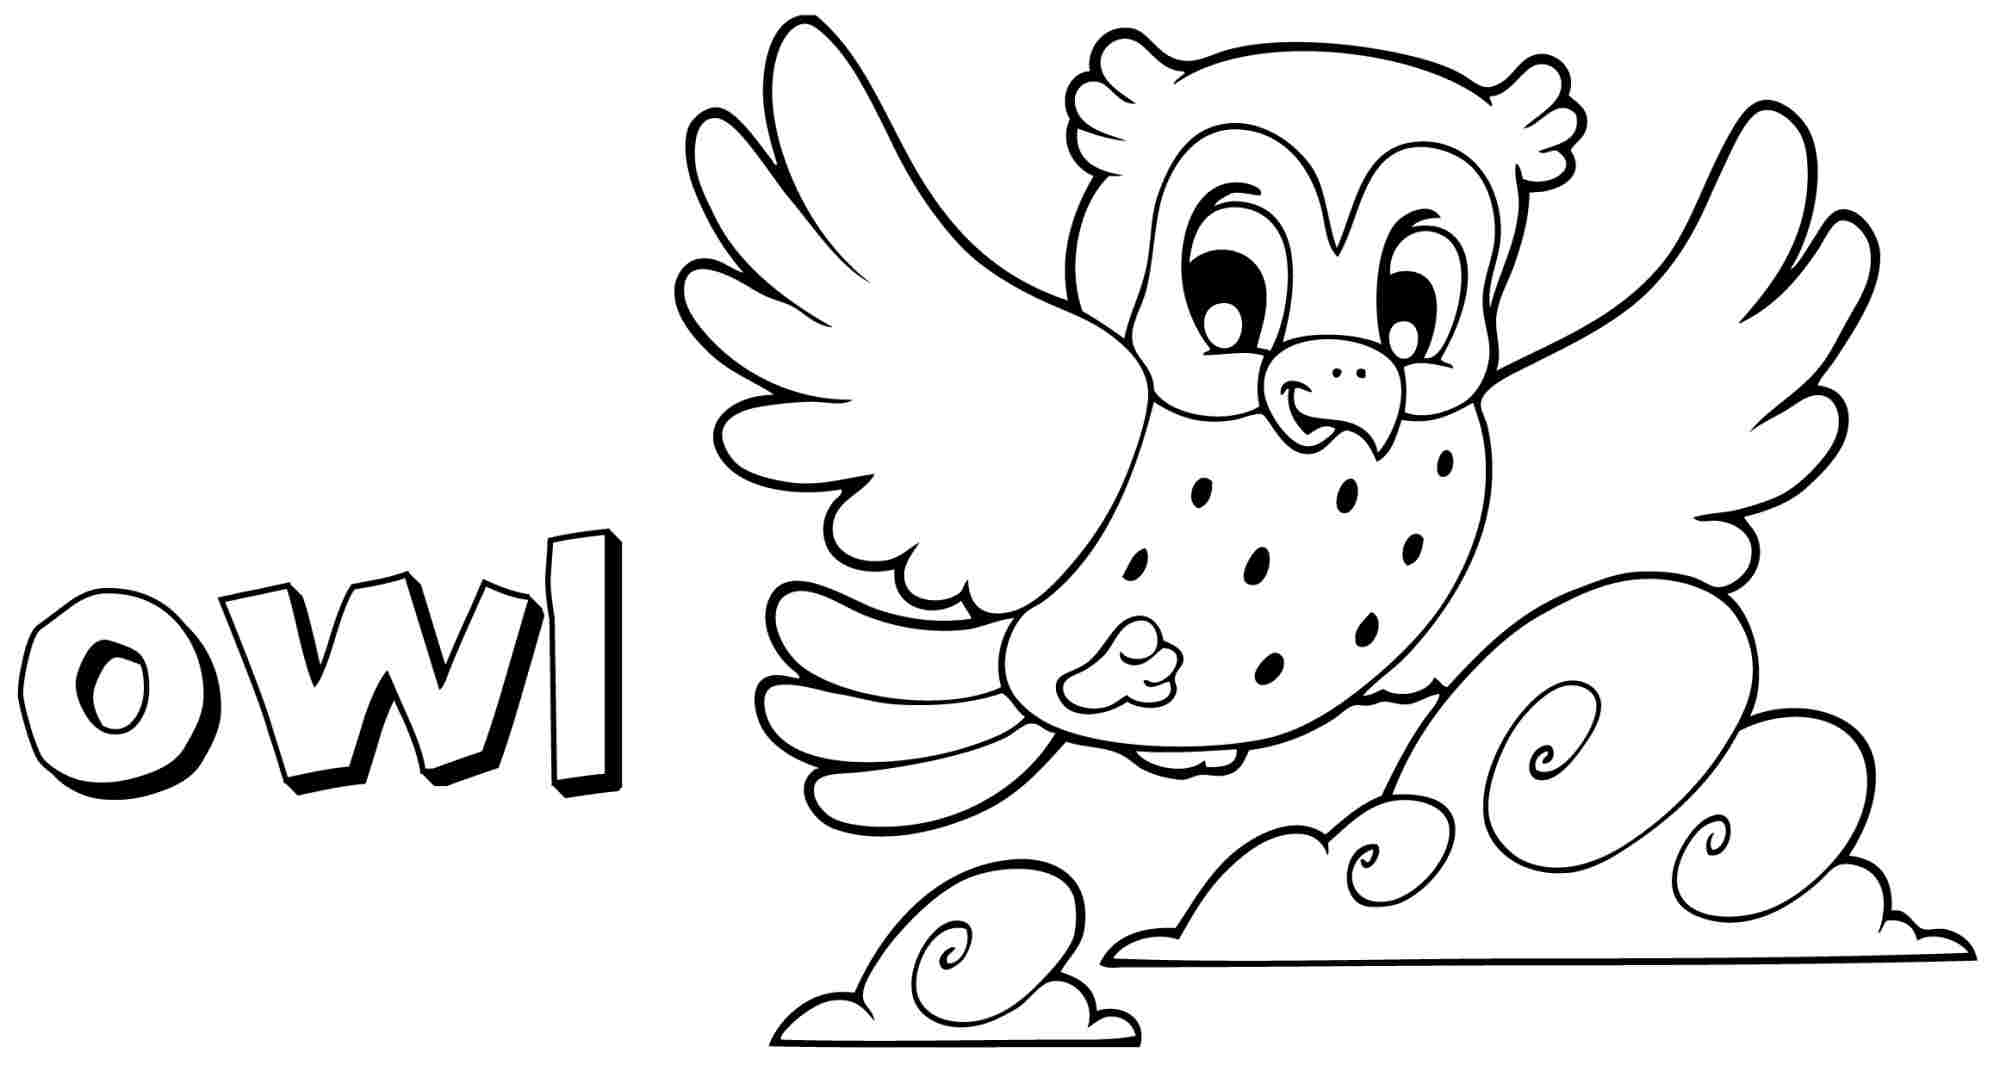 Top 53 Preeminent Kindergarten Graduation Coloring Pages.